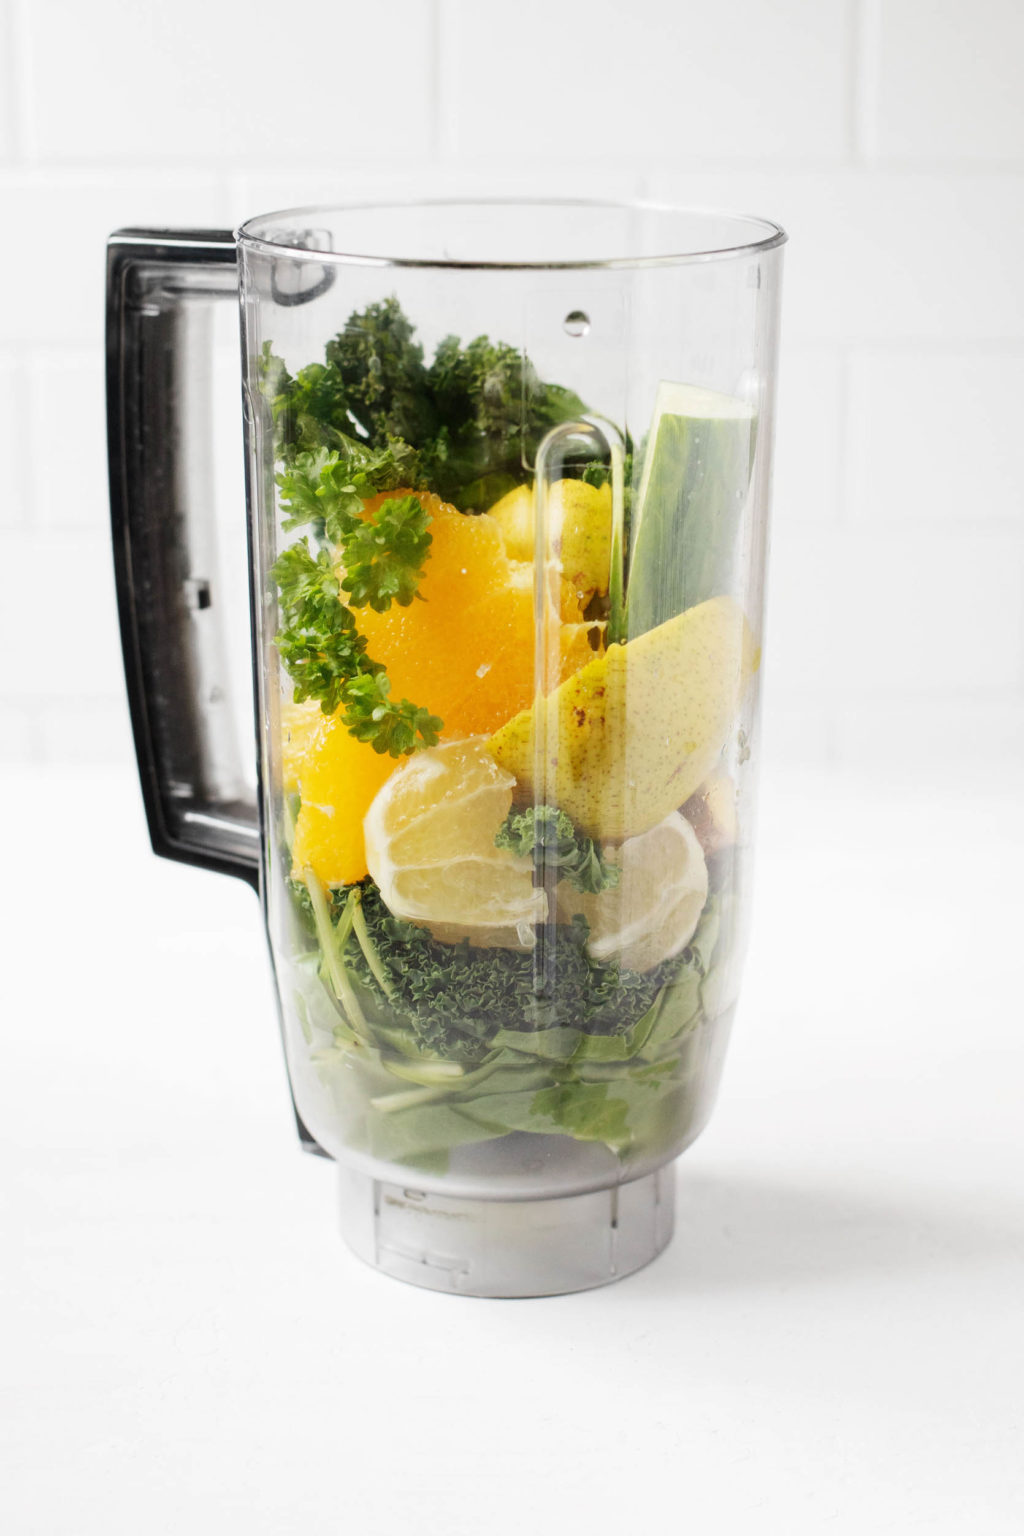 A clear blender is filled with healthful, plant-based ingredients.